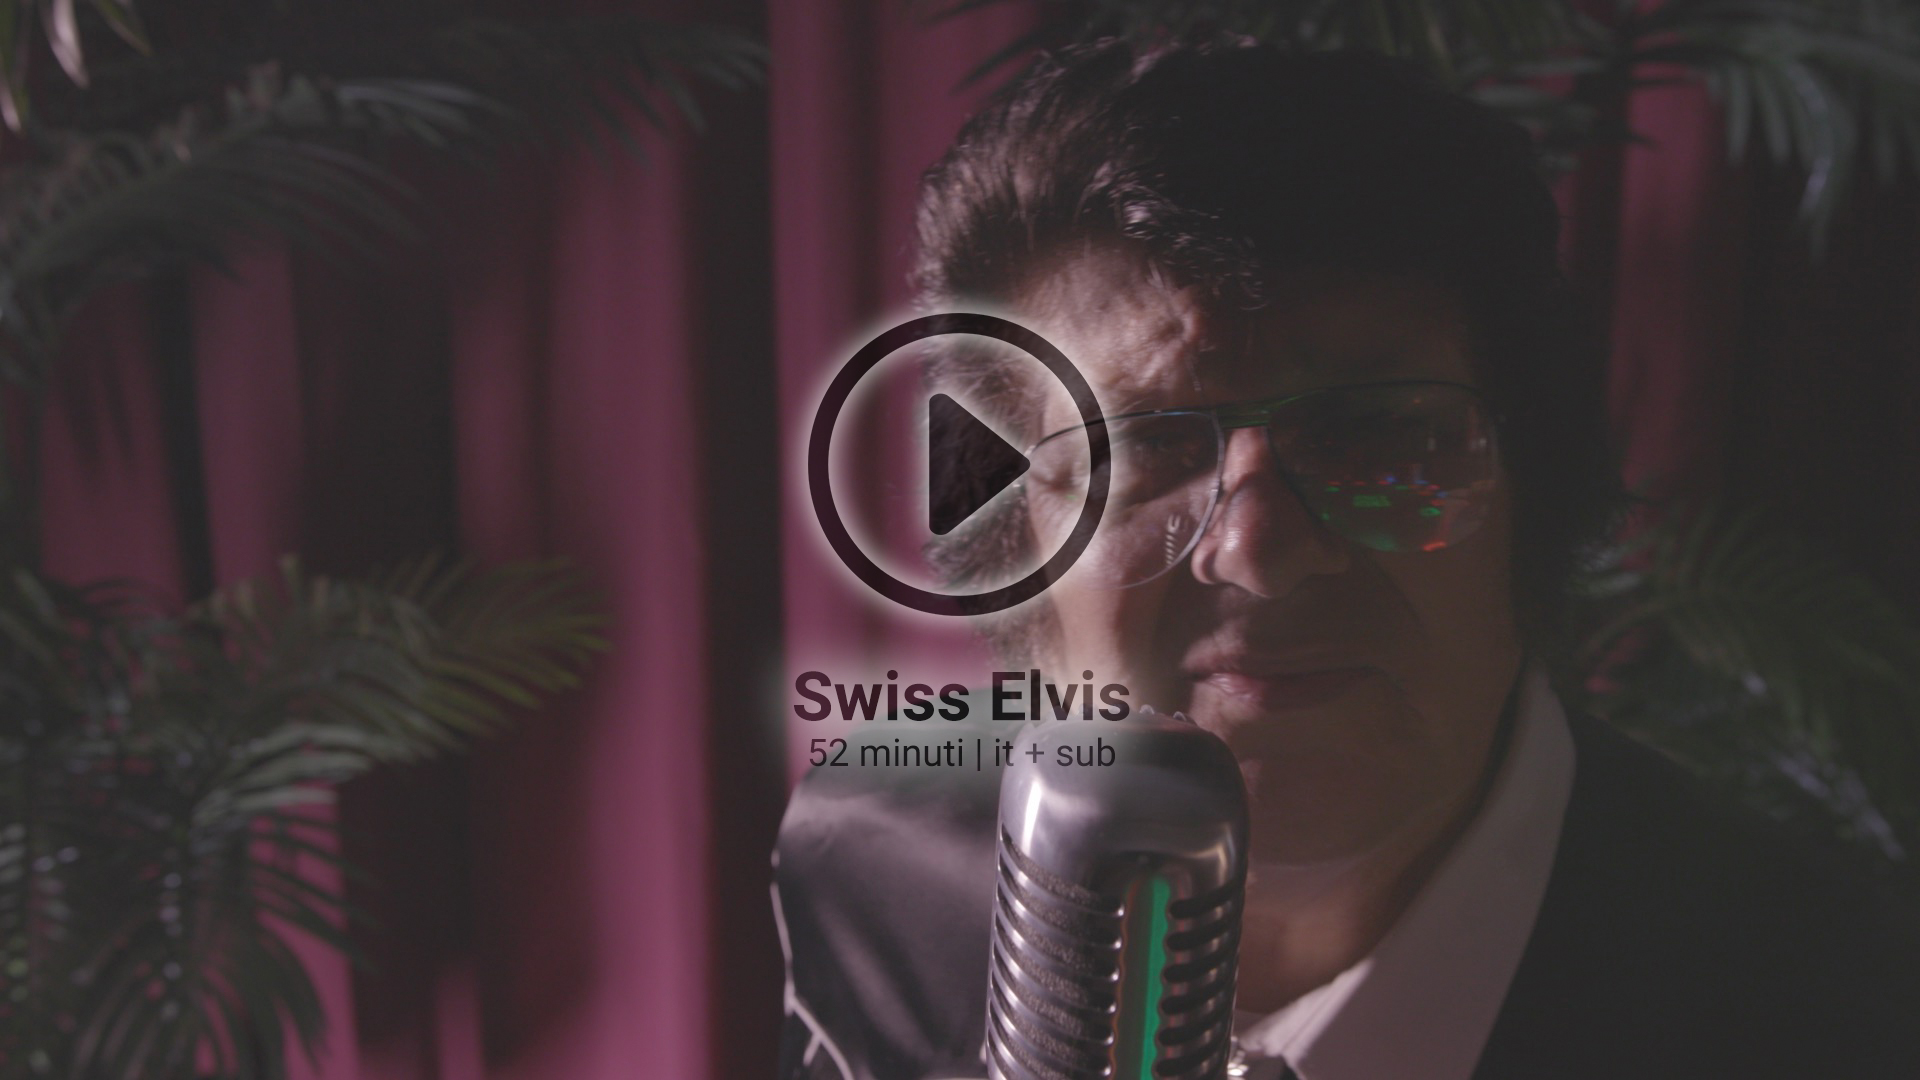 Swiss Elvis